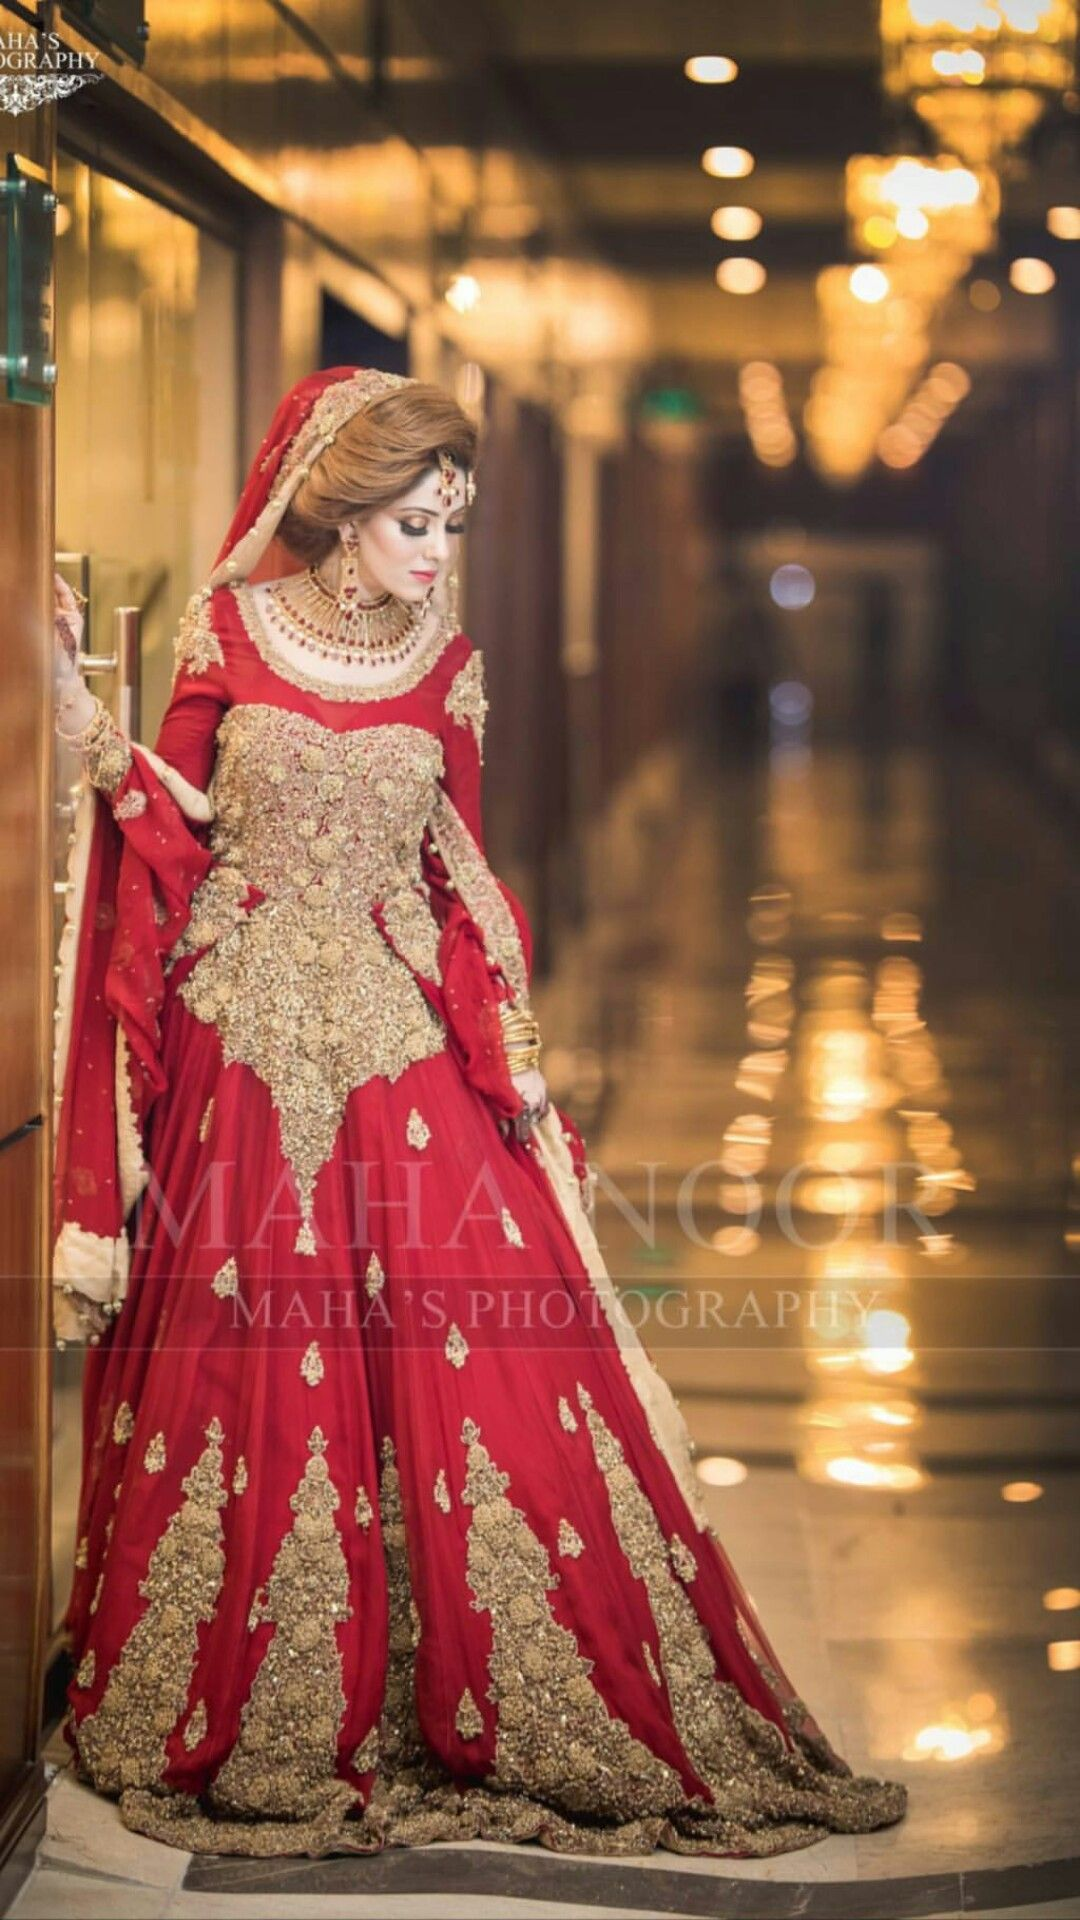 Pin By Arooj On Captivating Red Bridal Dress Pakistani Wedding Dresses Pakistani Bridal Dresses